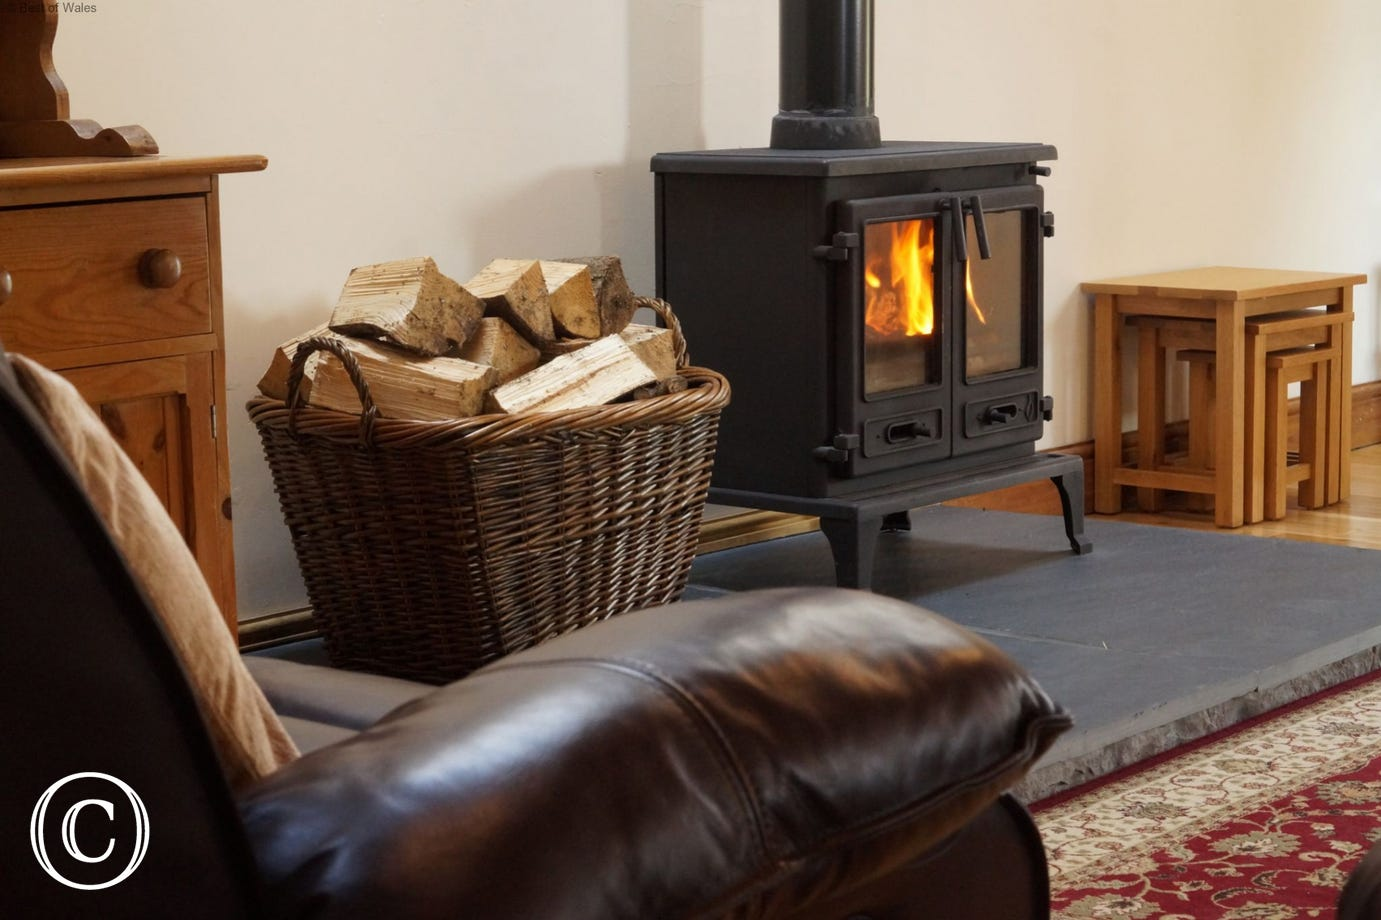 Includes a welcoming woodburner